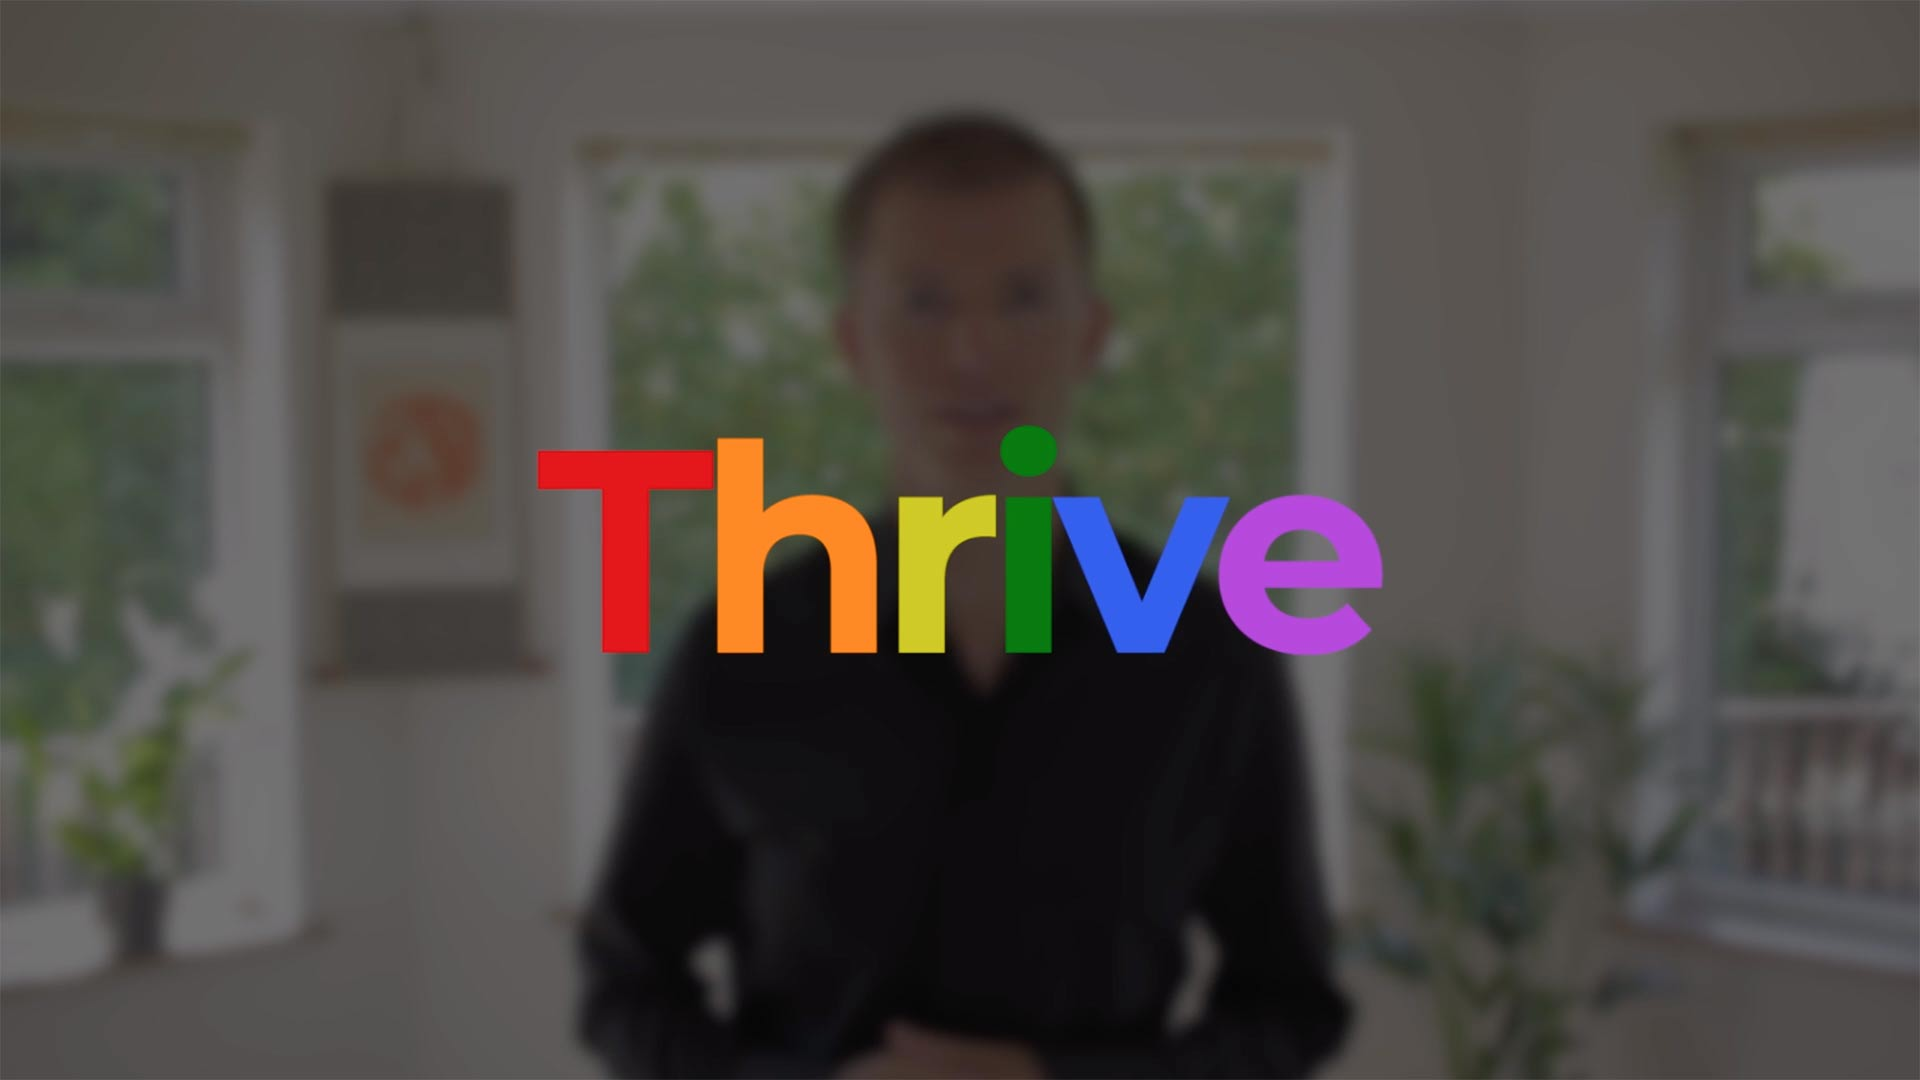 thrive course full programme content